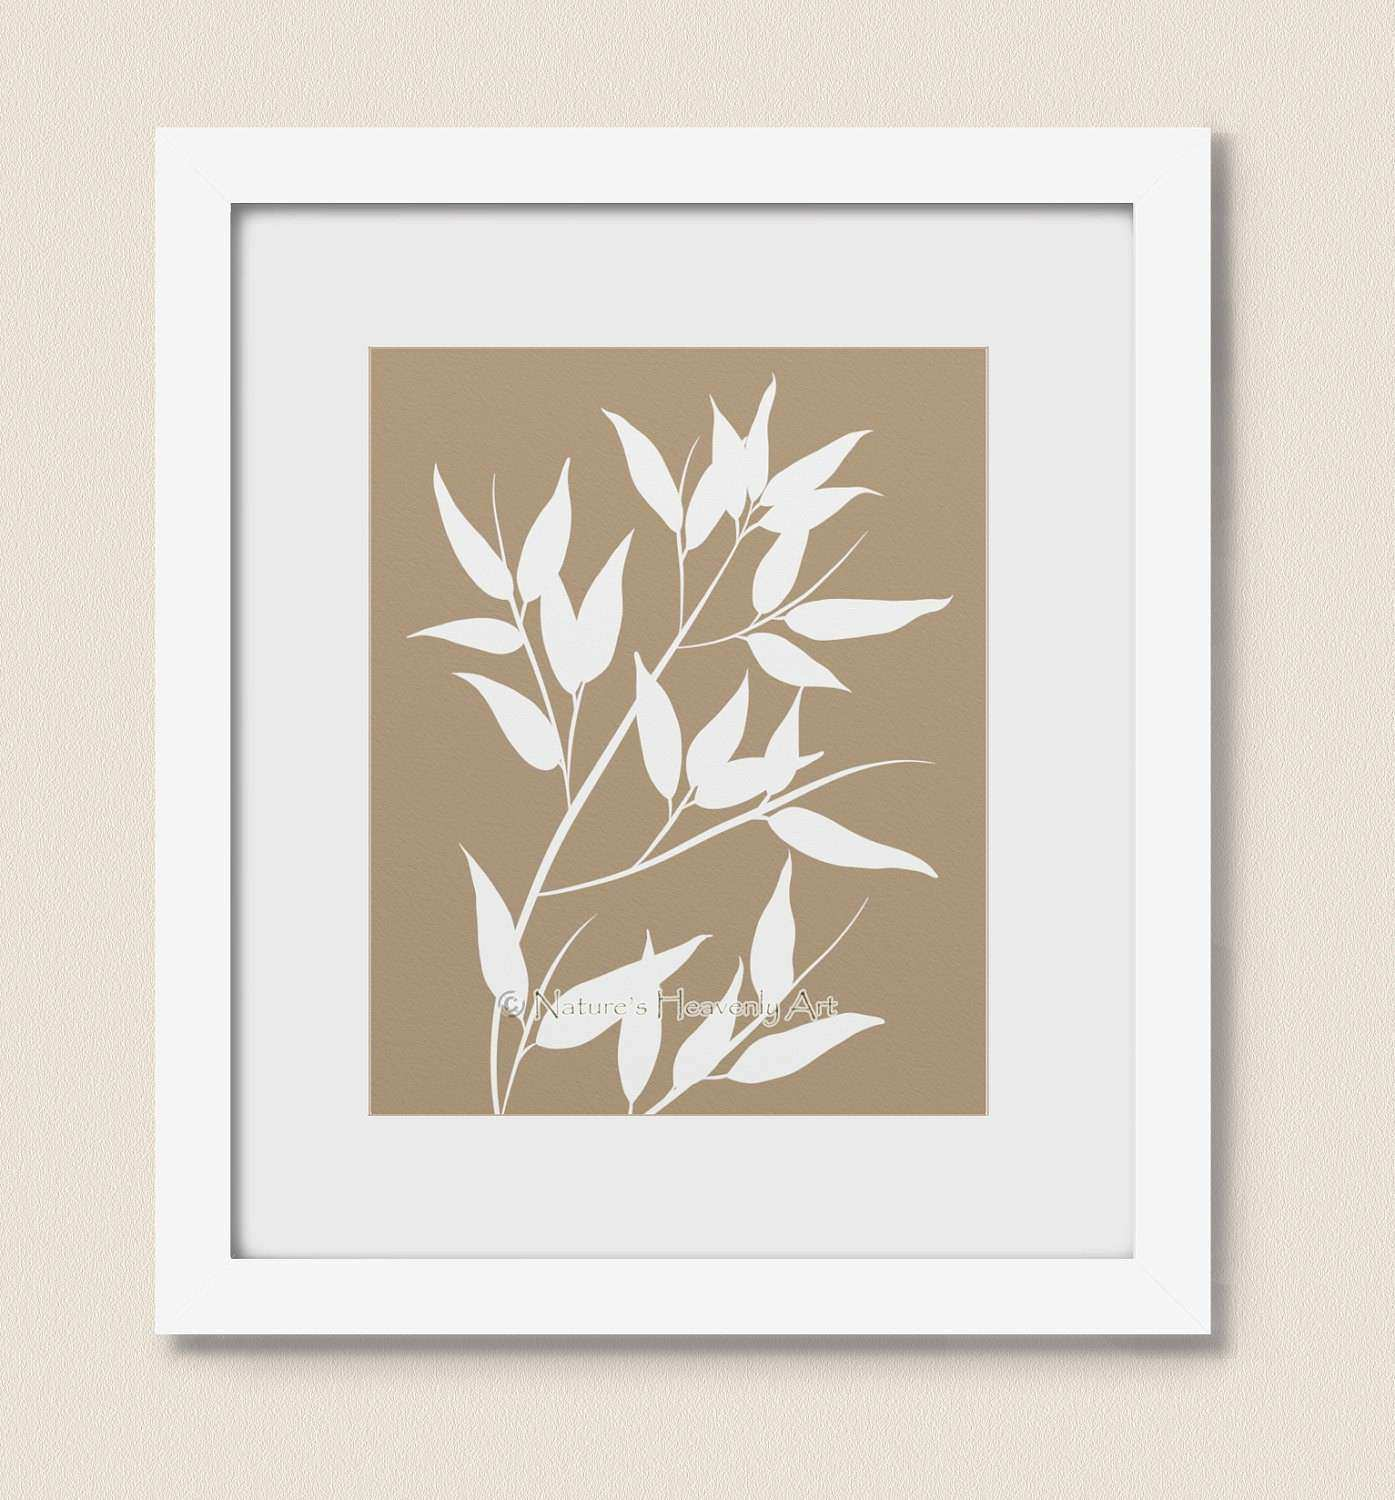 Tan Bamboo Wall Art Japanese Home decor 8 x 10 bamboo Leaves